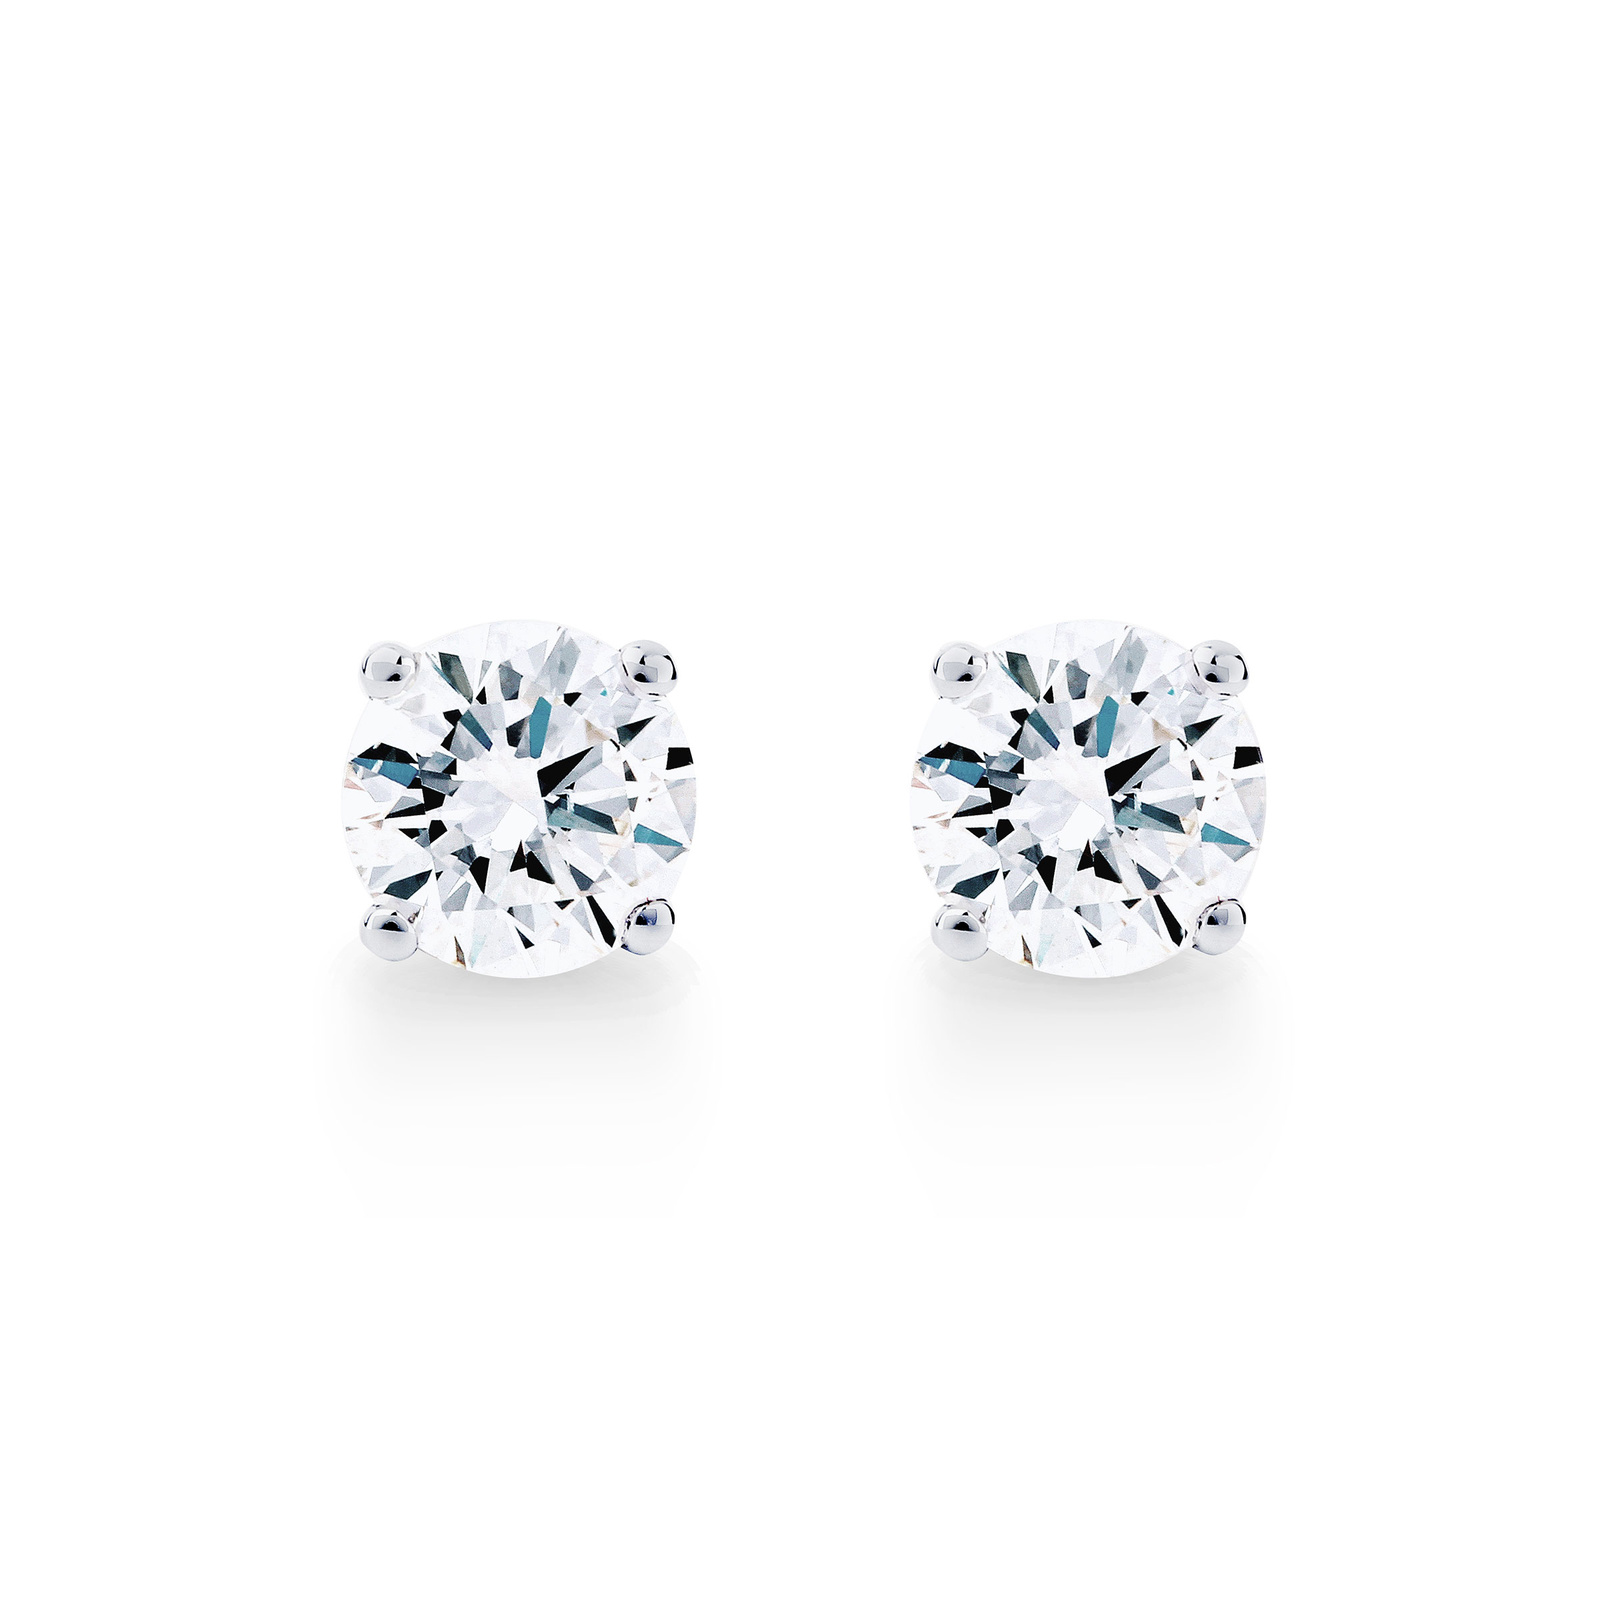 Libretto 18ct White Gold 2 00ct Diamond Stud Earrings